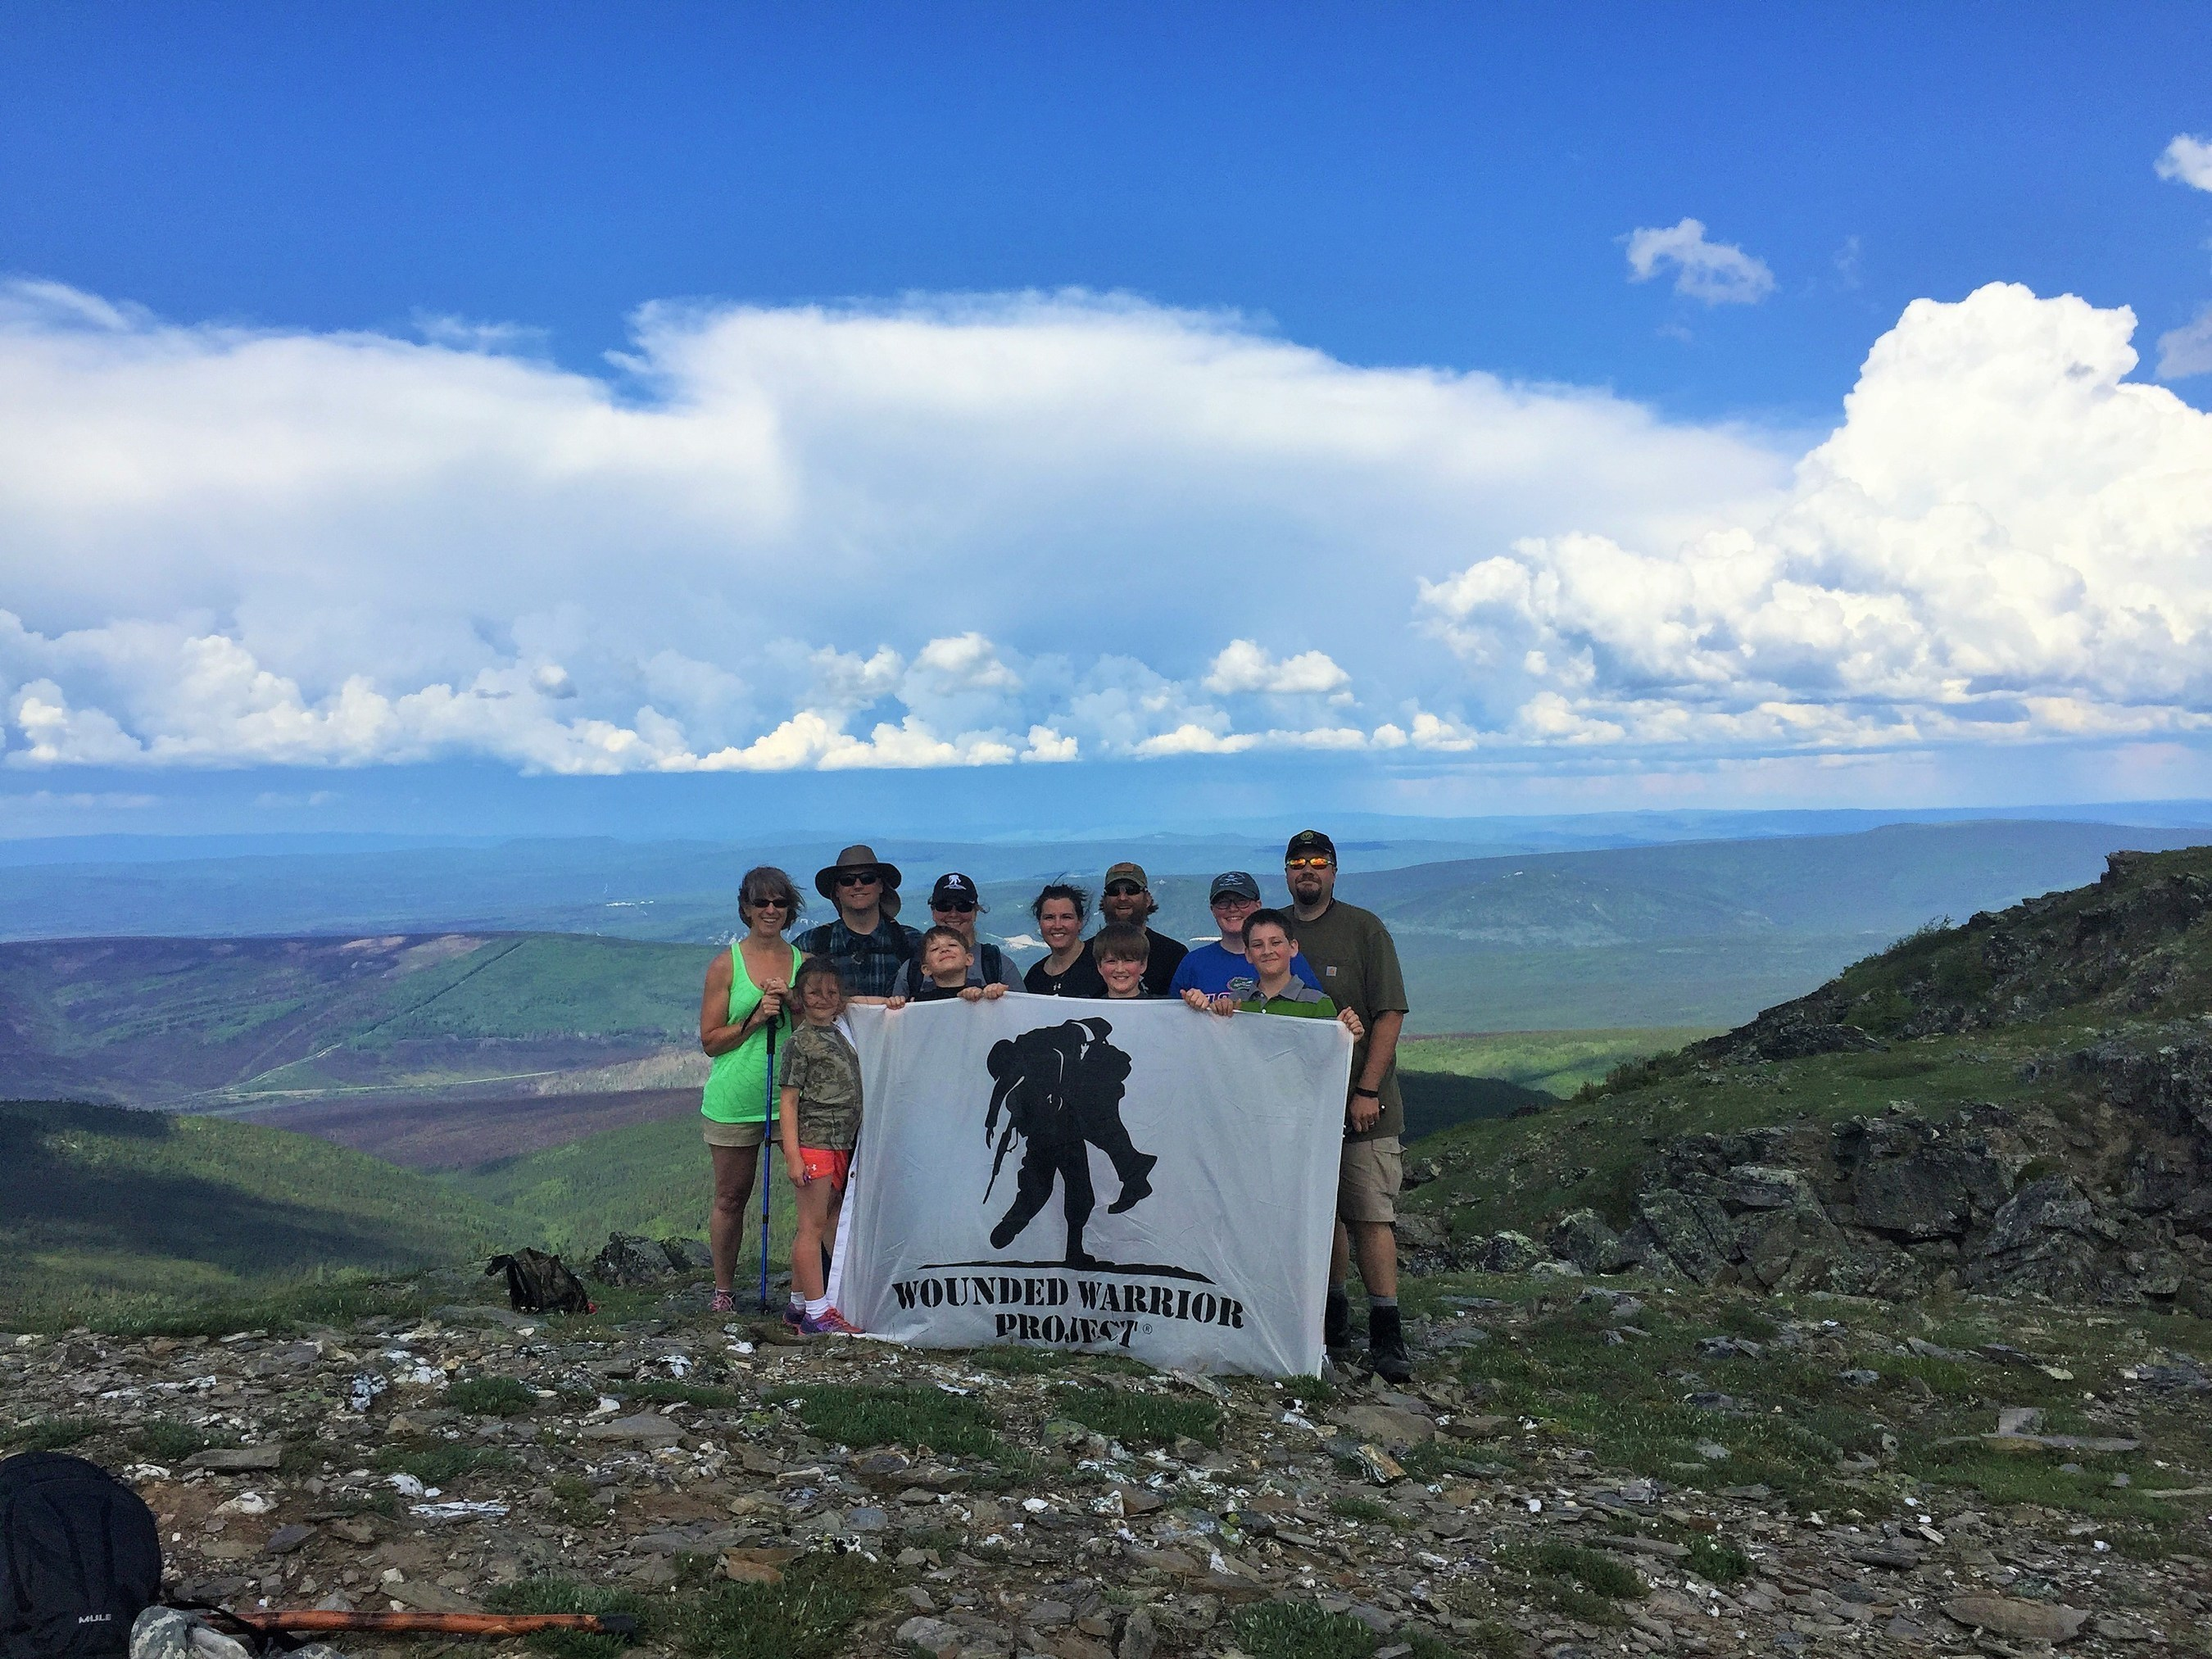 Wounded Warrior Project is hosting an interior hike challenge in Fox, Alaska. The hikes are scheduled to increase in challenge level as the season progresses.